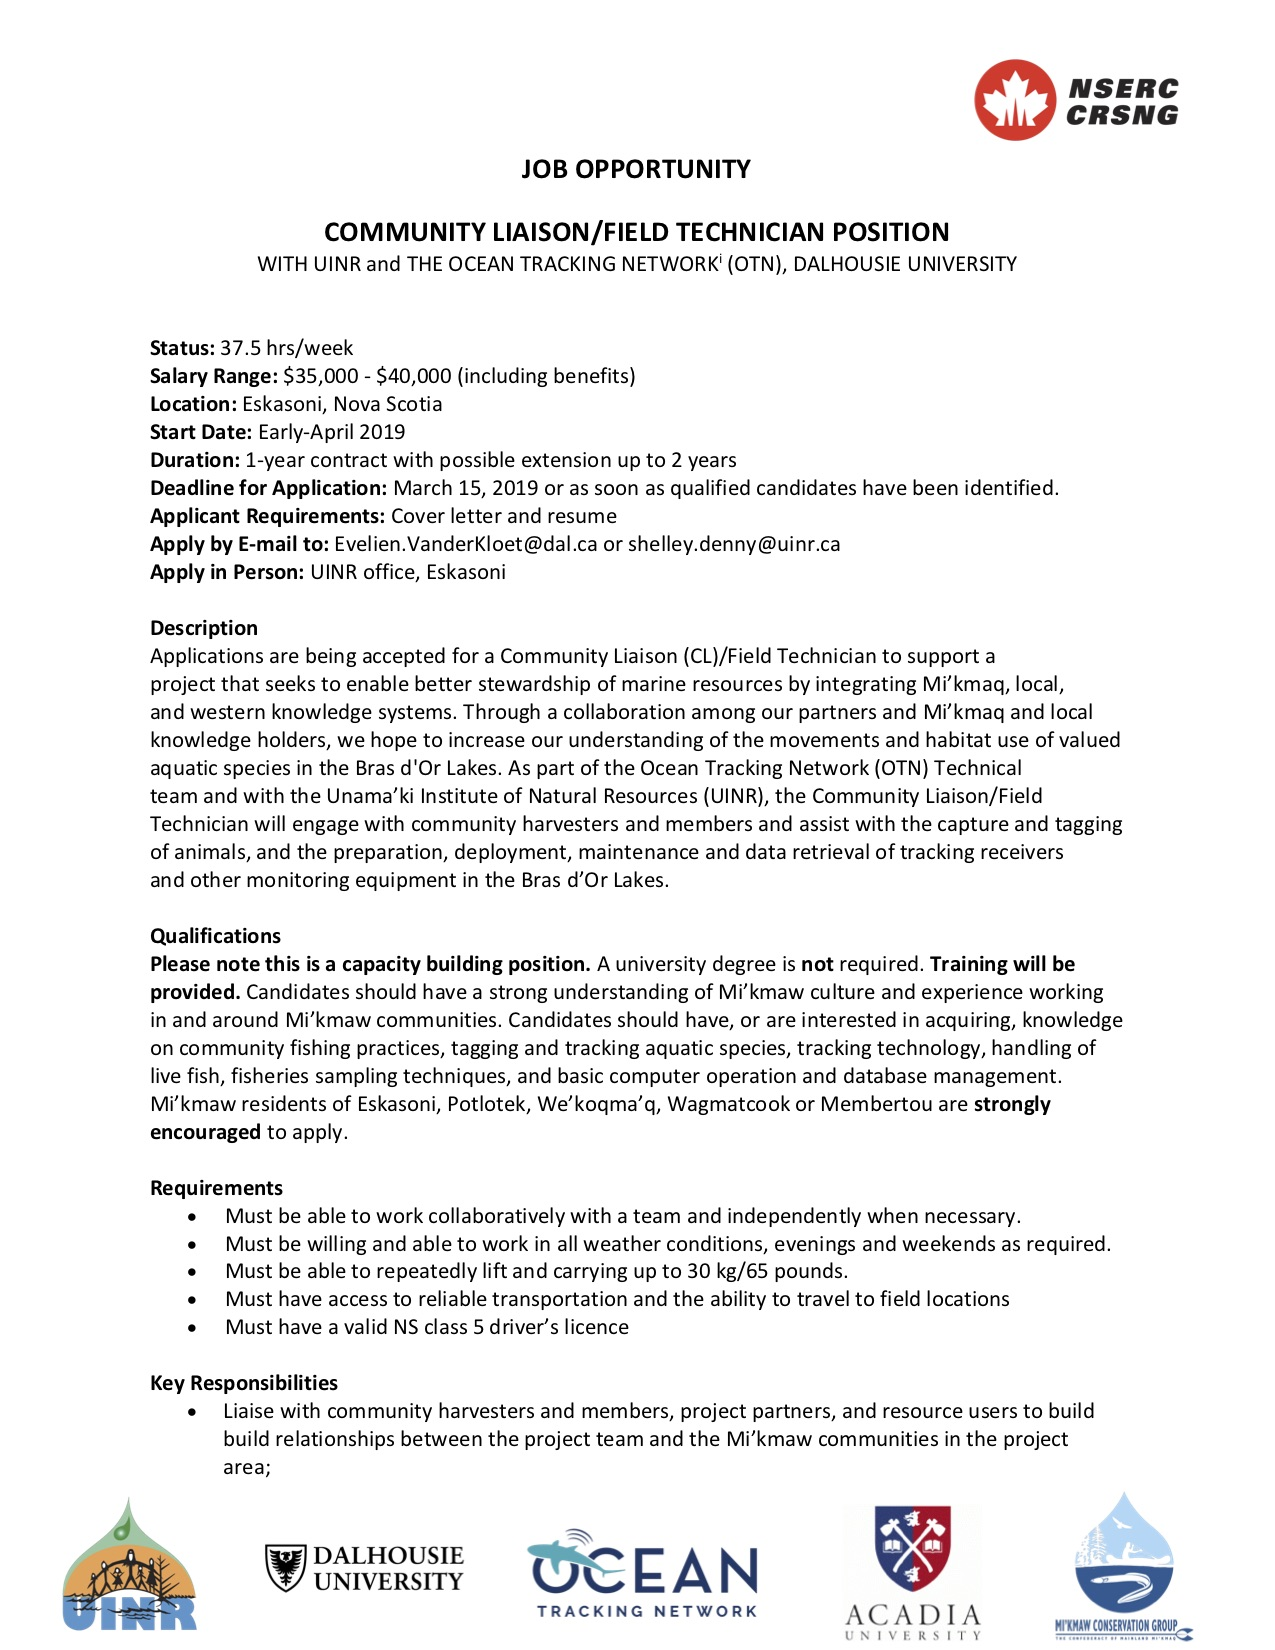 Job Opportunity: Community Liaison / Field Technician